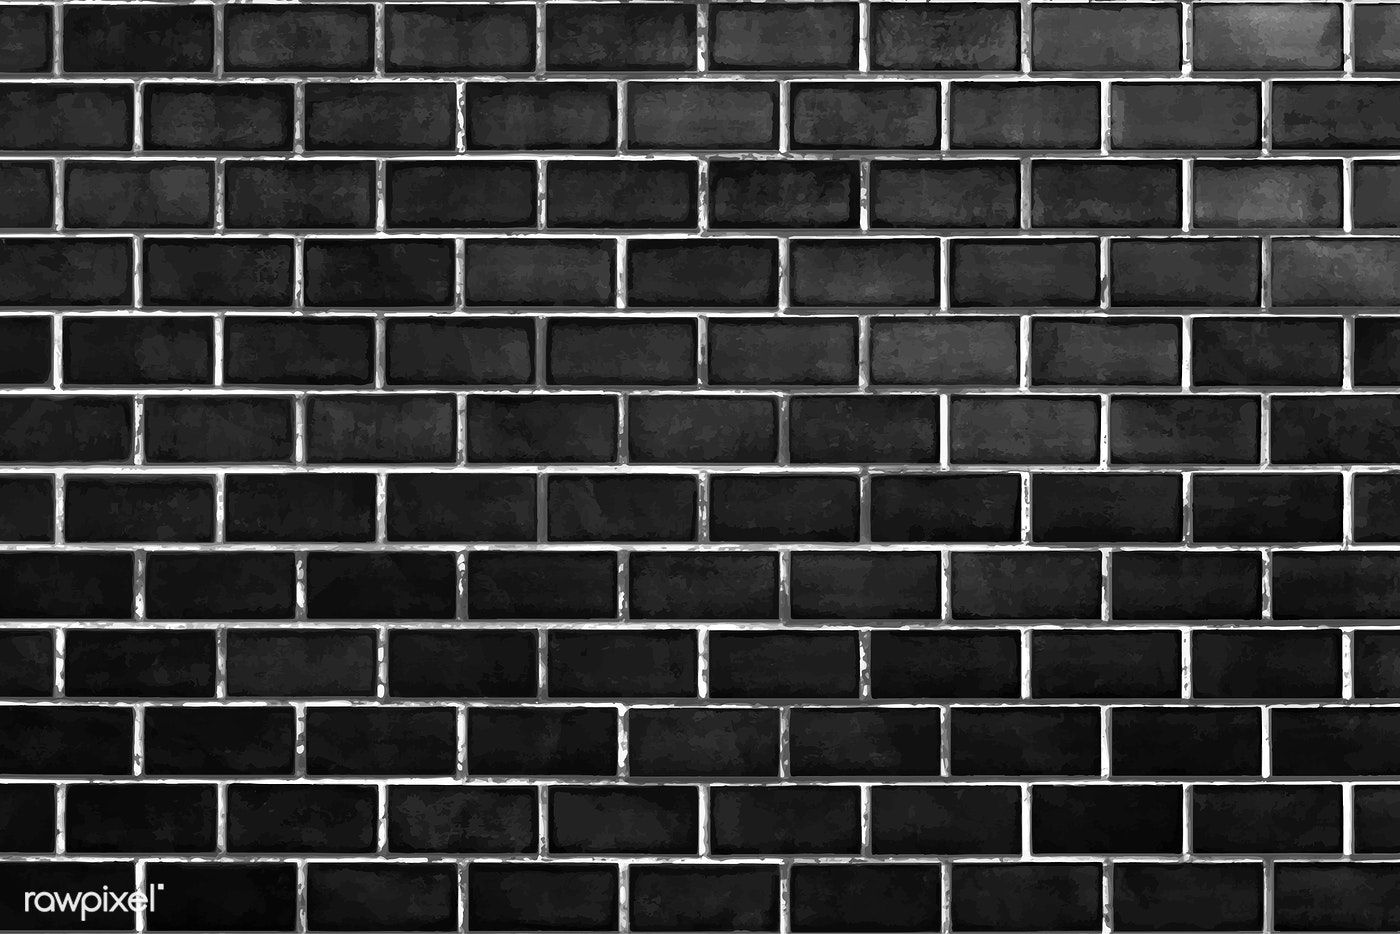 Black Brick Wall Textured Background Vector Free Image By Rawpixel Com Aom Woraluck Chim Kung Ploy Black Brick Wall Brick Wall Textured Walls